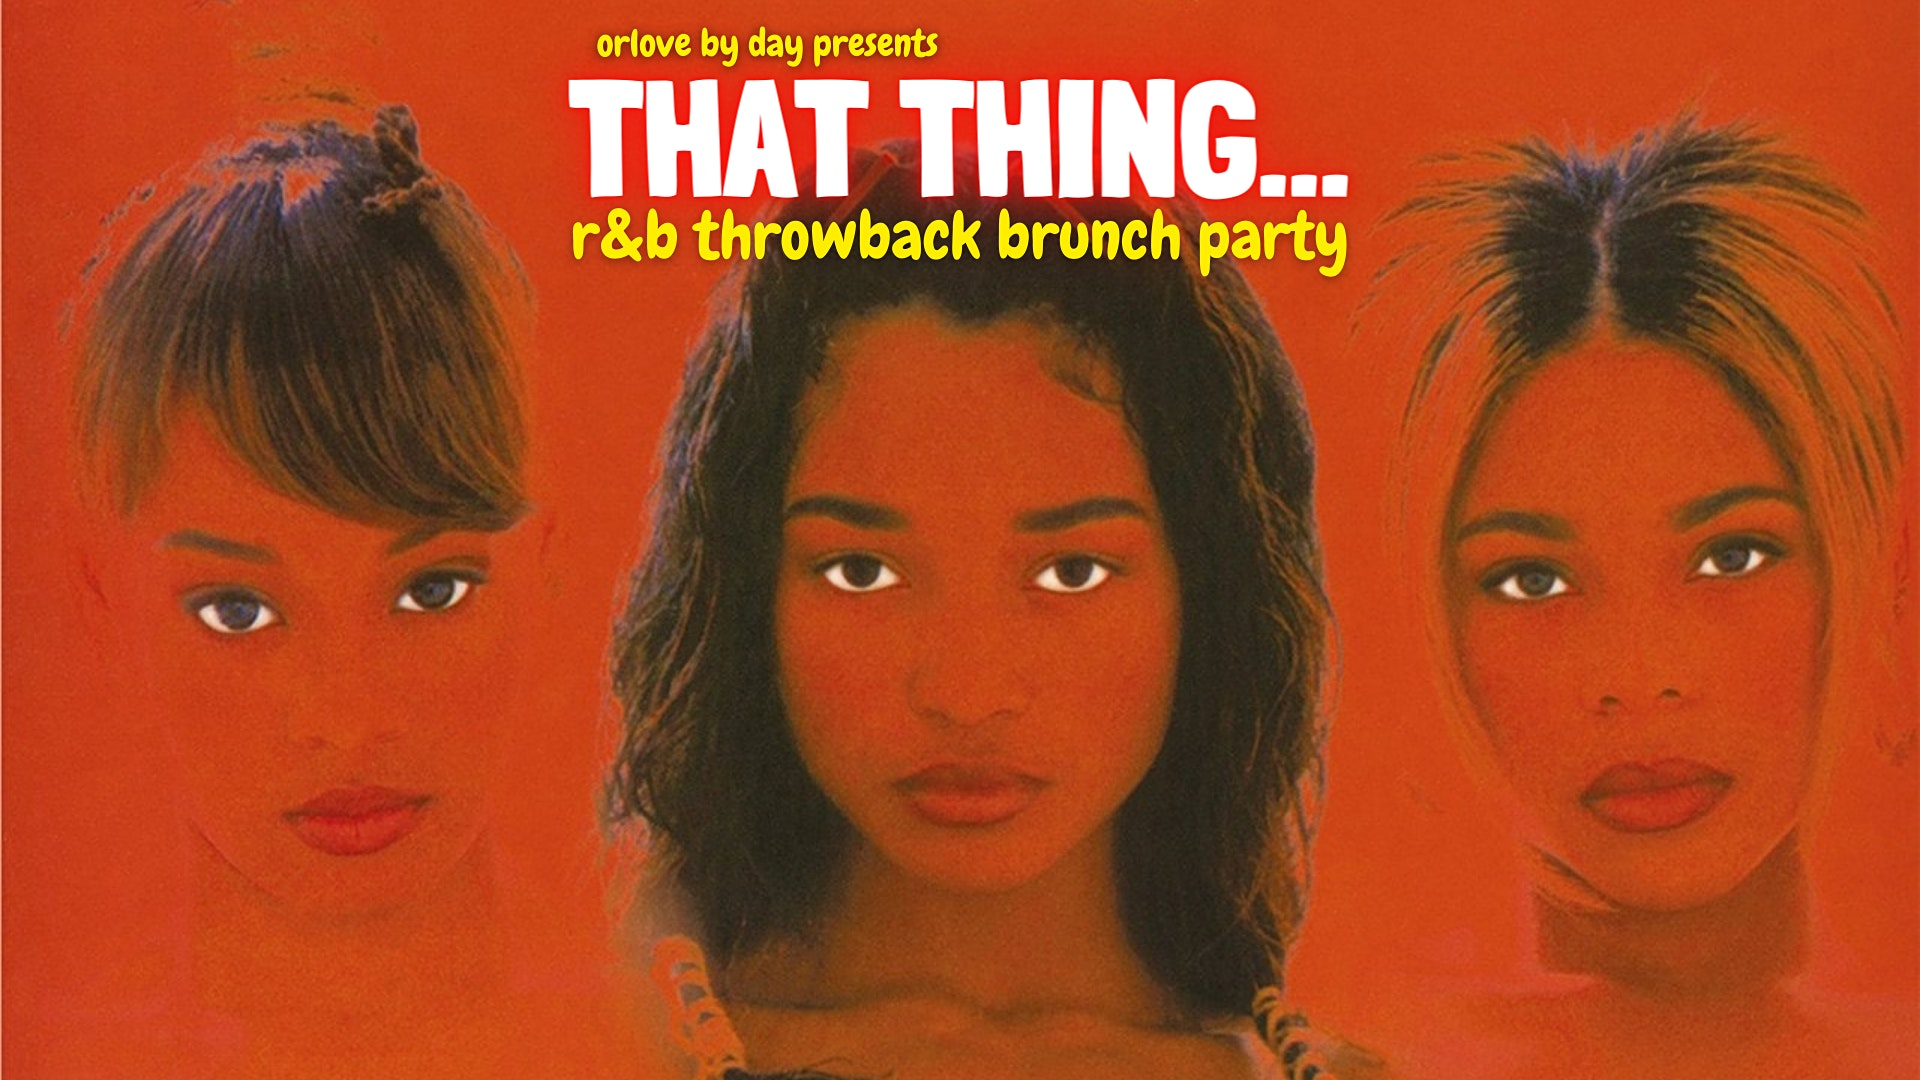 That Thing: An R&B Throwback Brunch Party Vol. 2